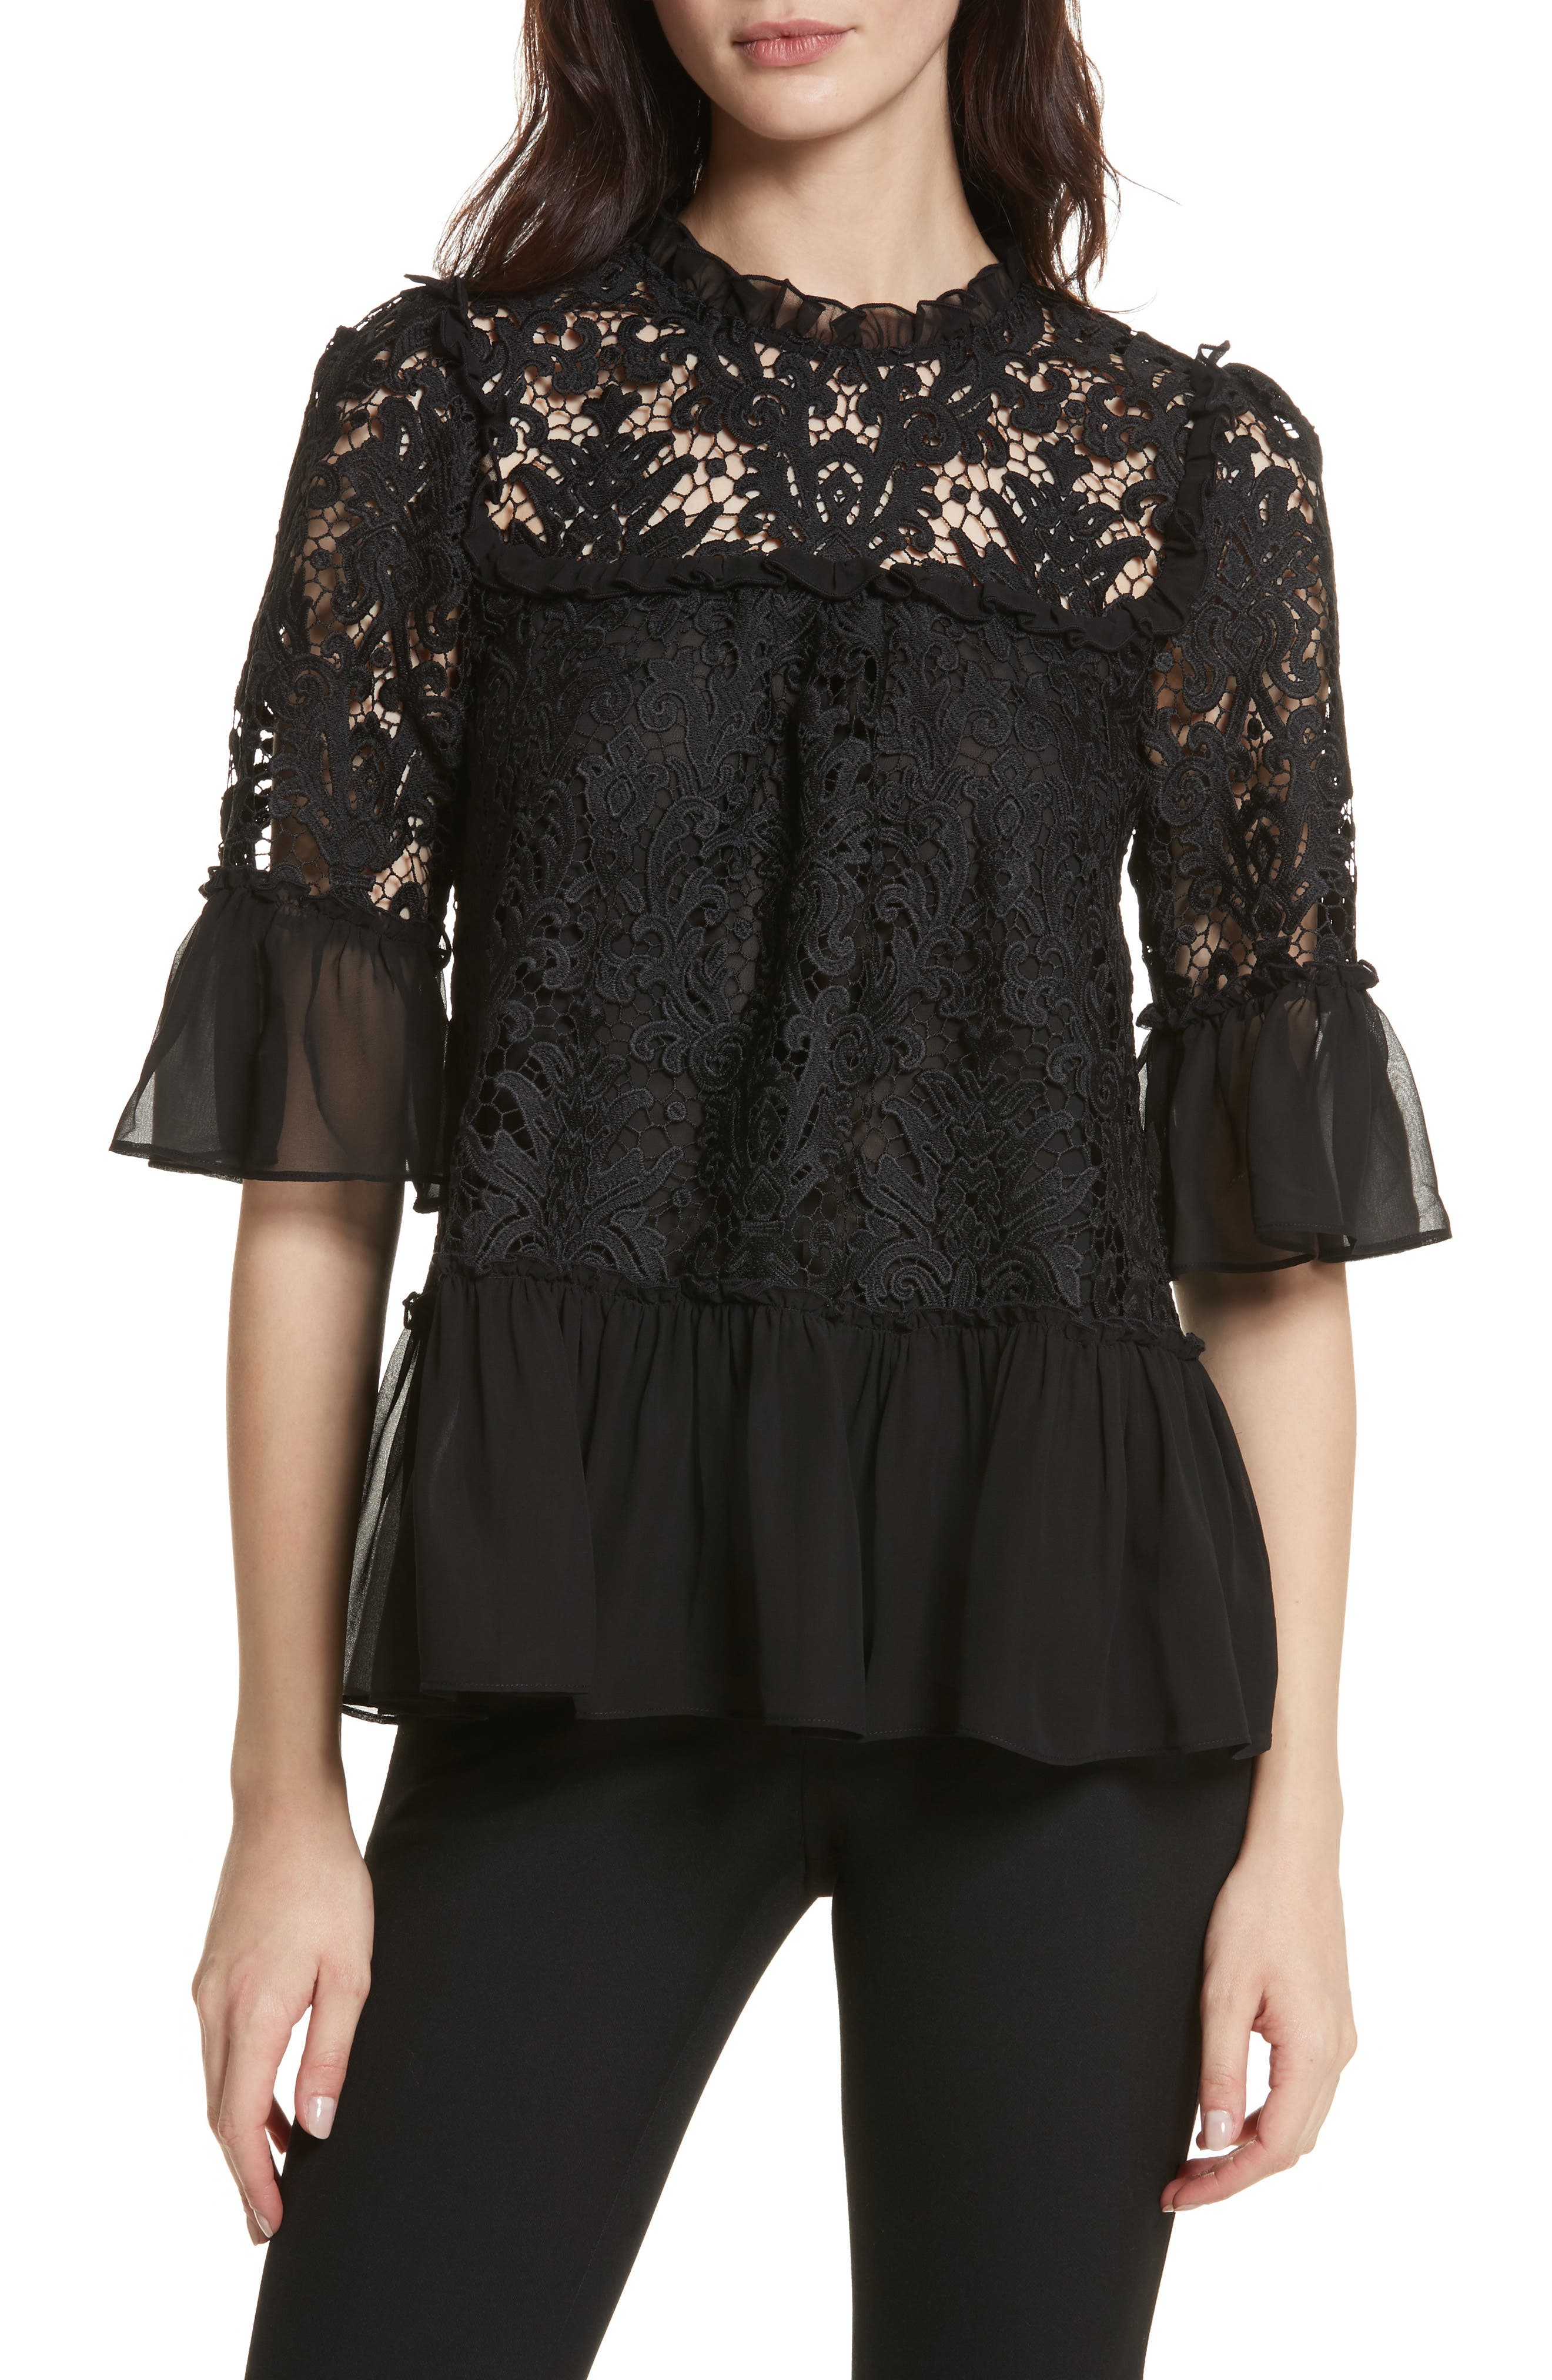 Alternate Image 1 Selected - kate spade tapestry lace top